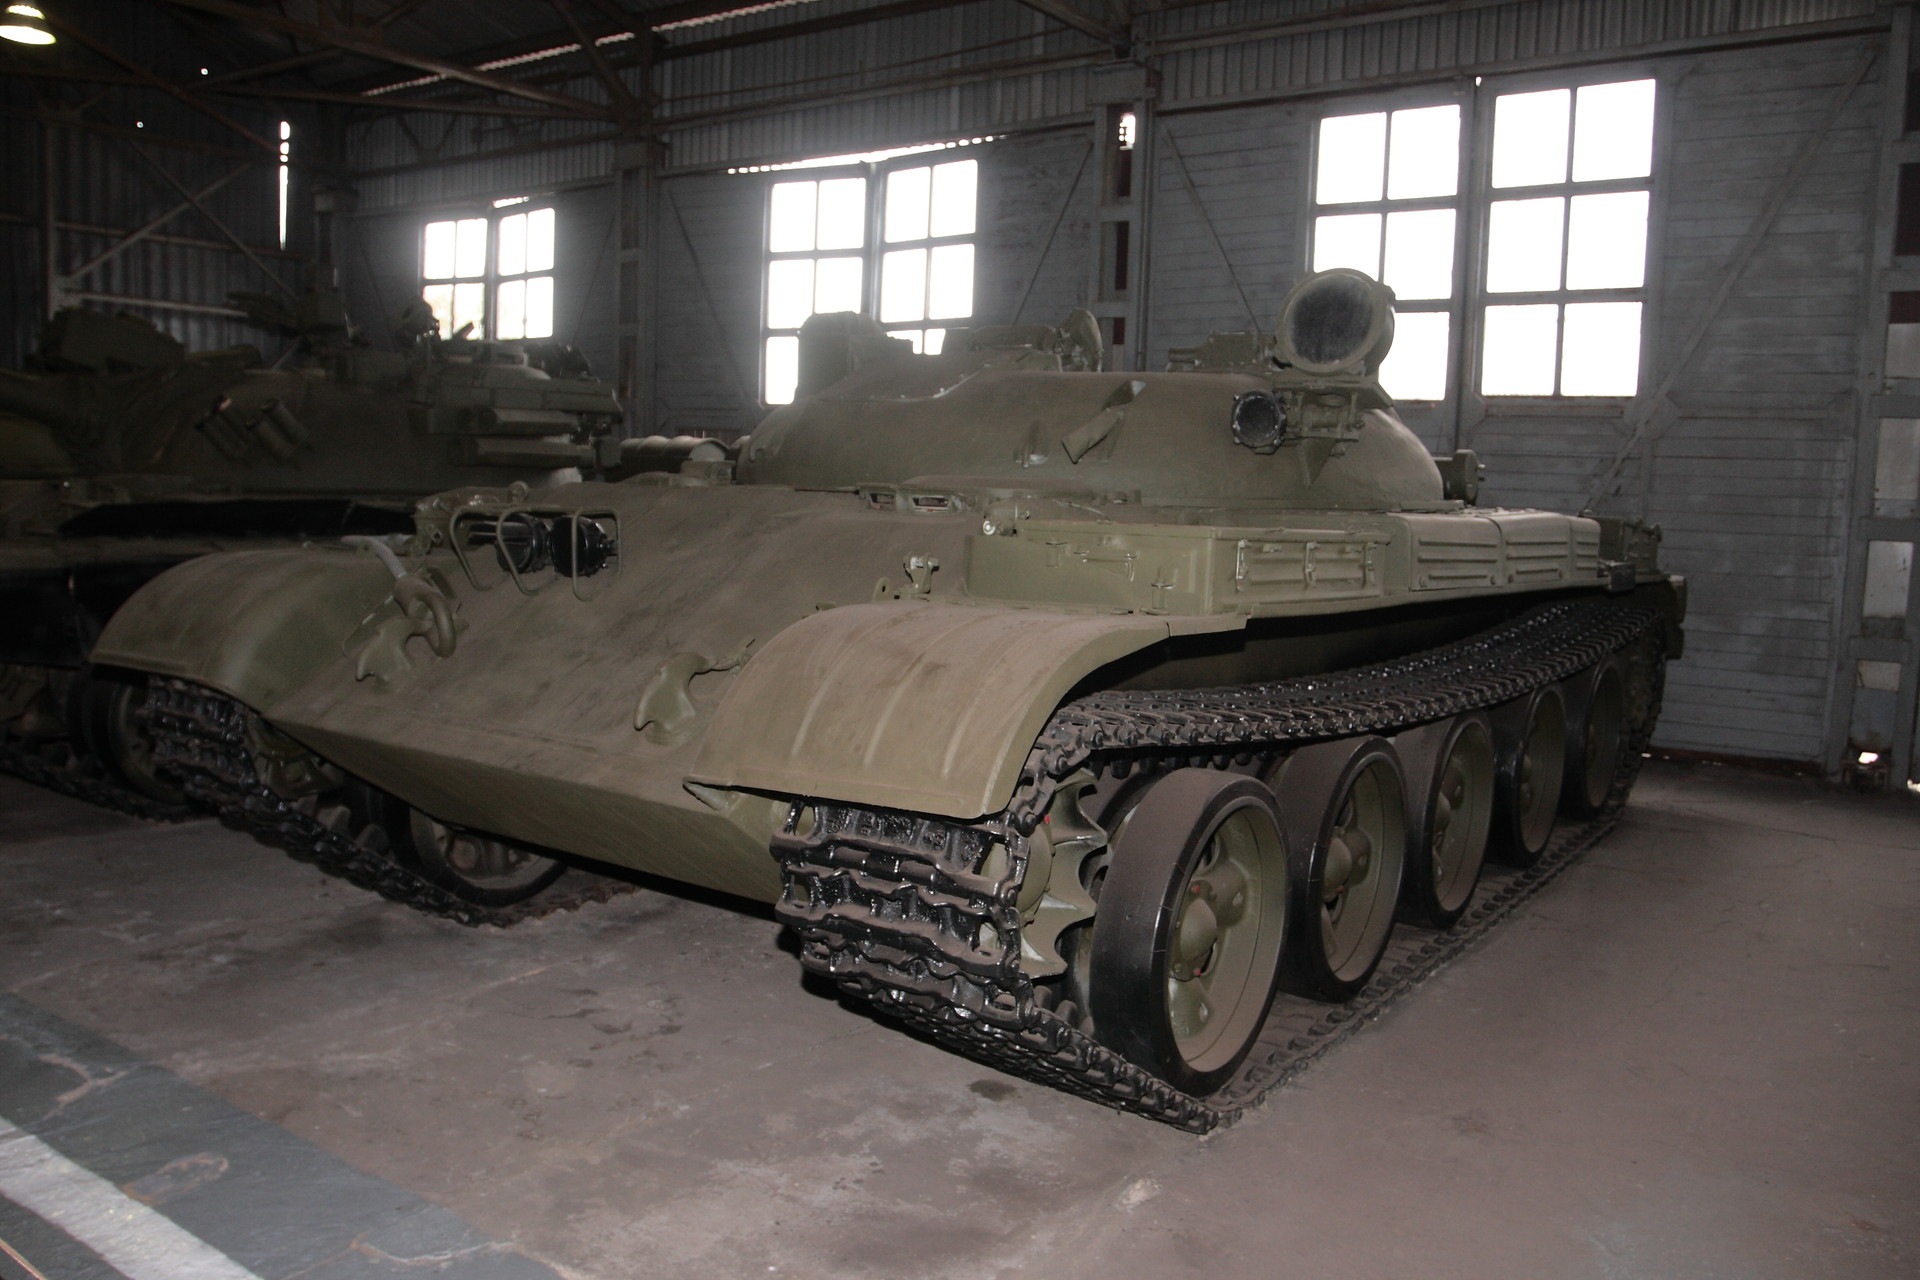 Tanque IT-1.